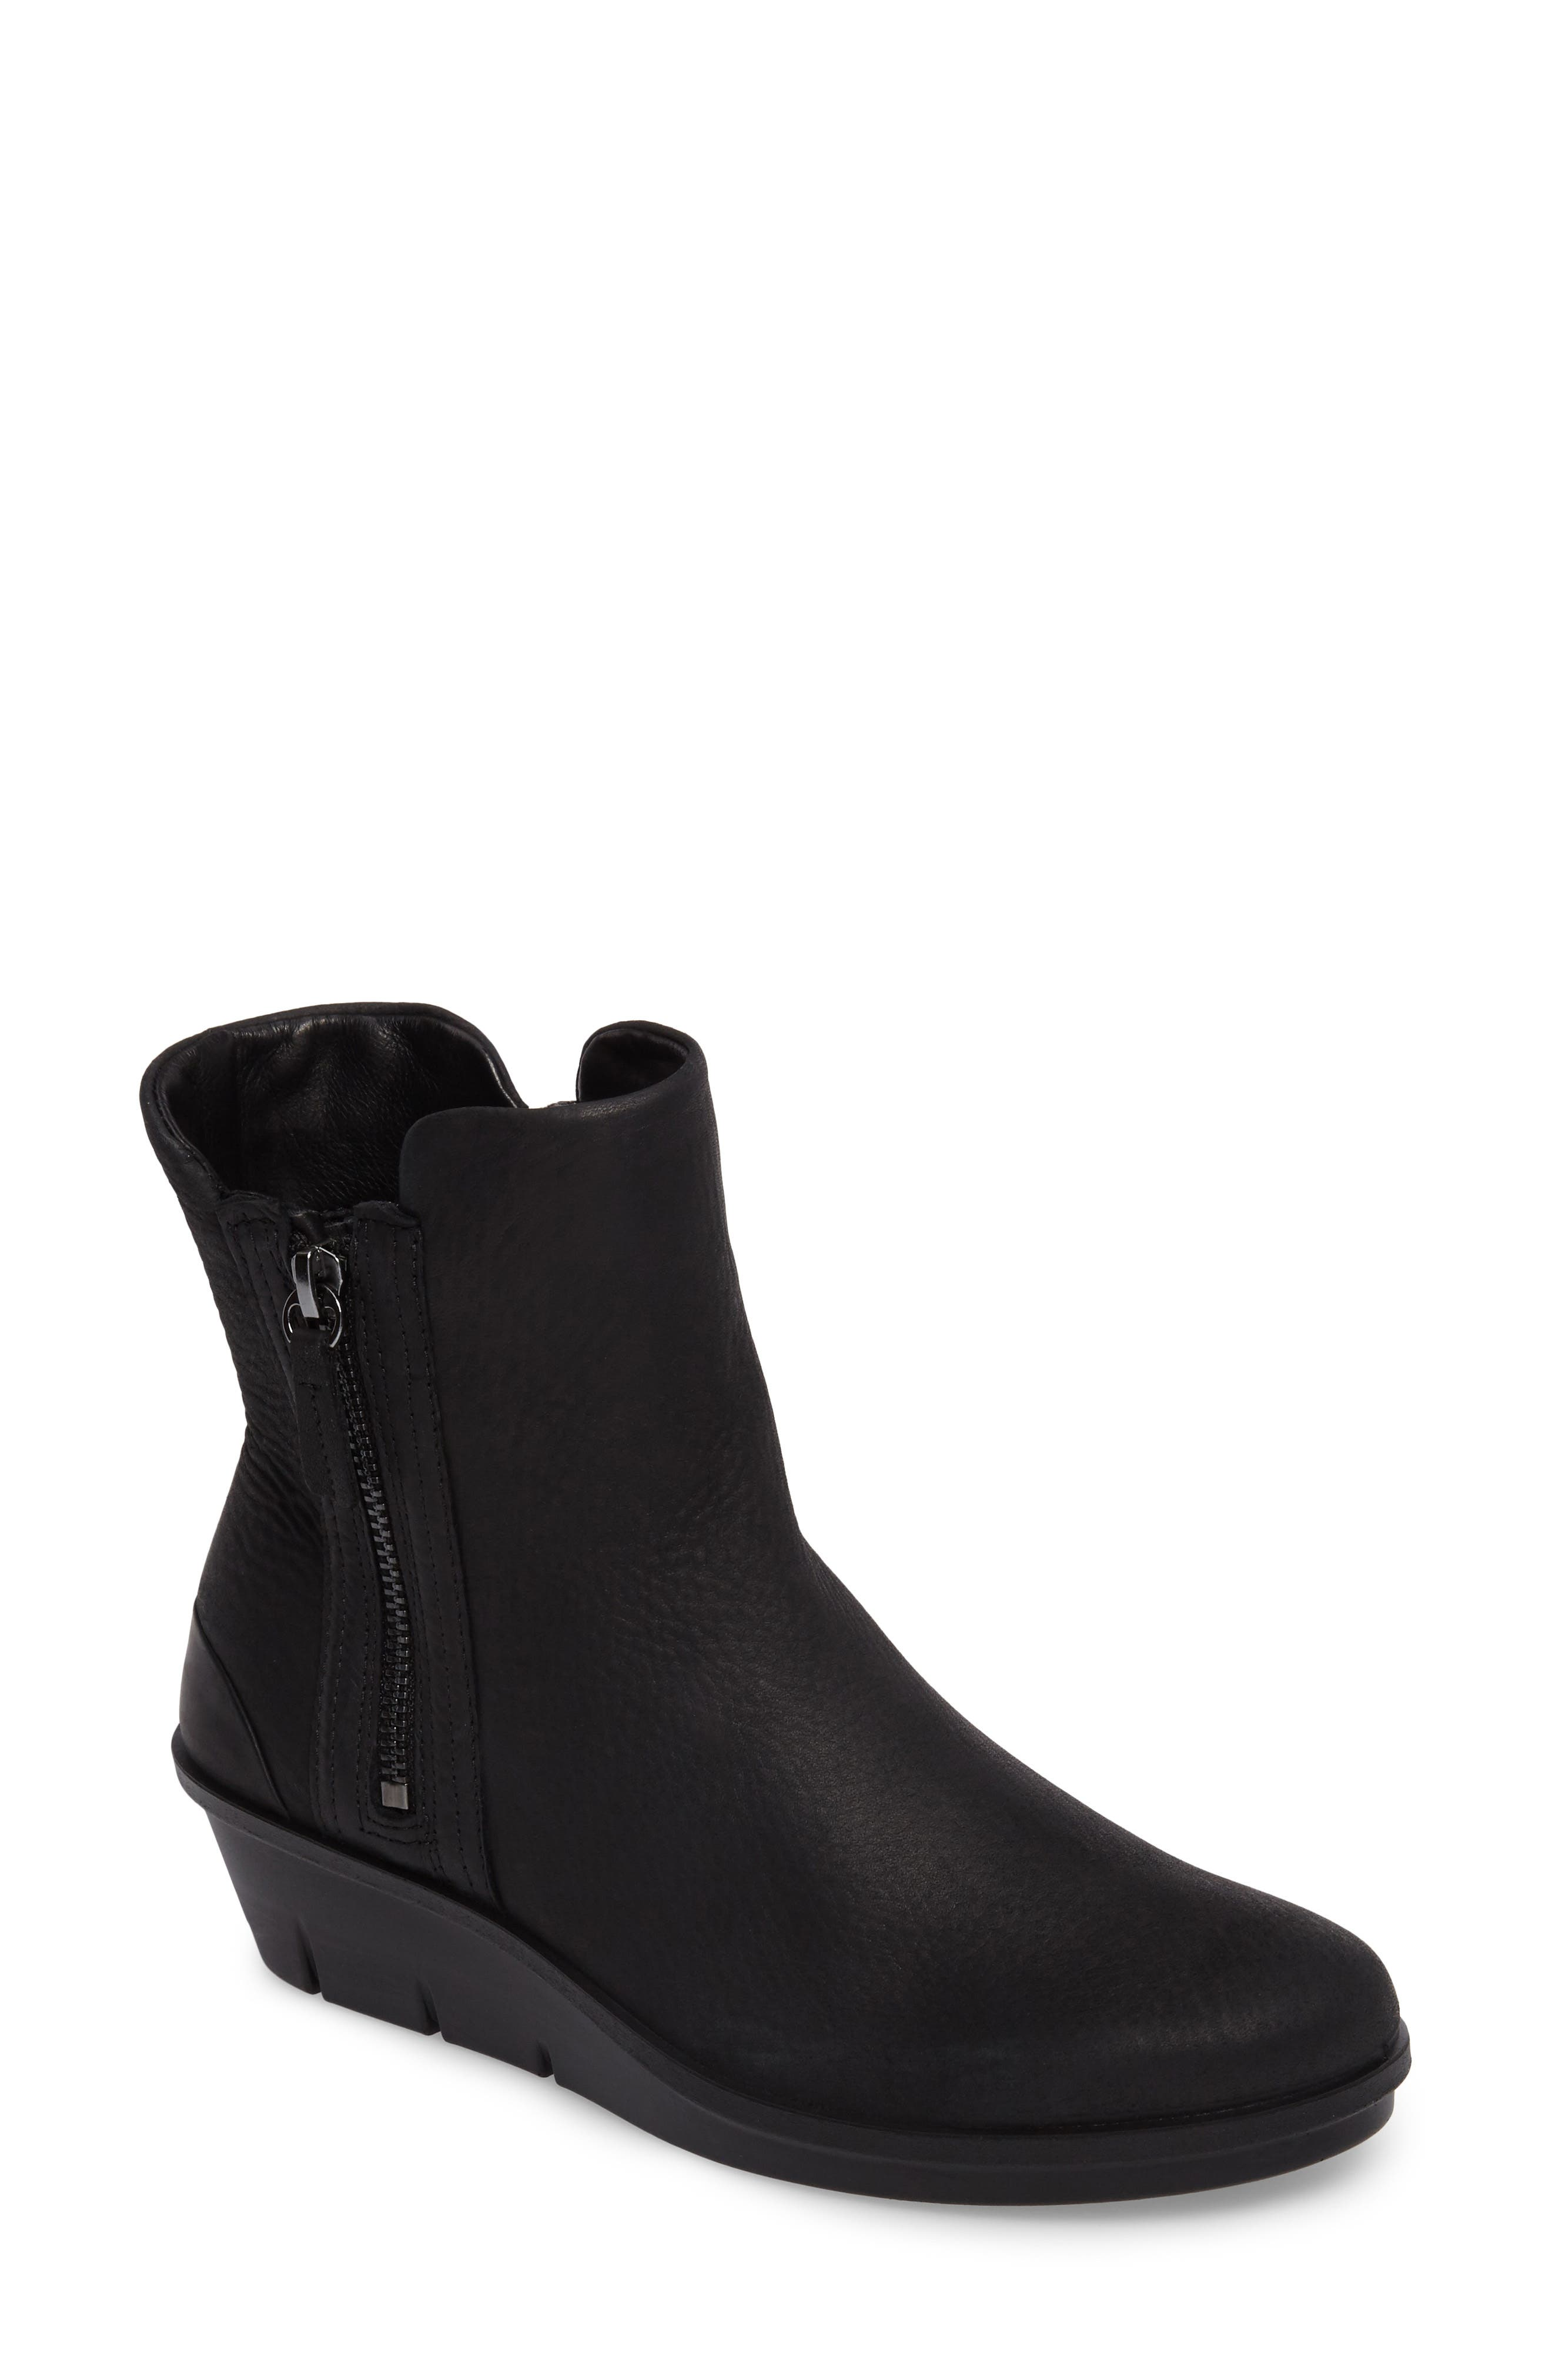 Skyler Notched Wedge Bootie,                             Main thumbnail 1, color,                             001